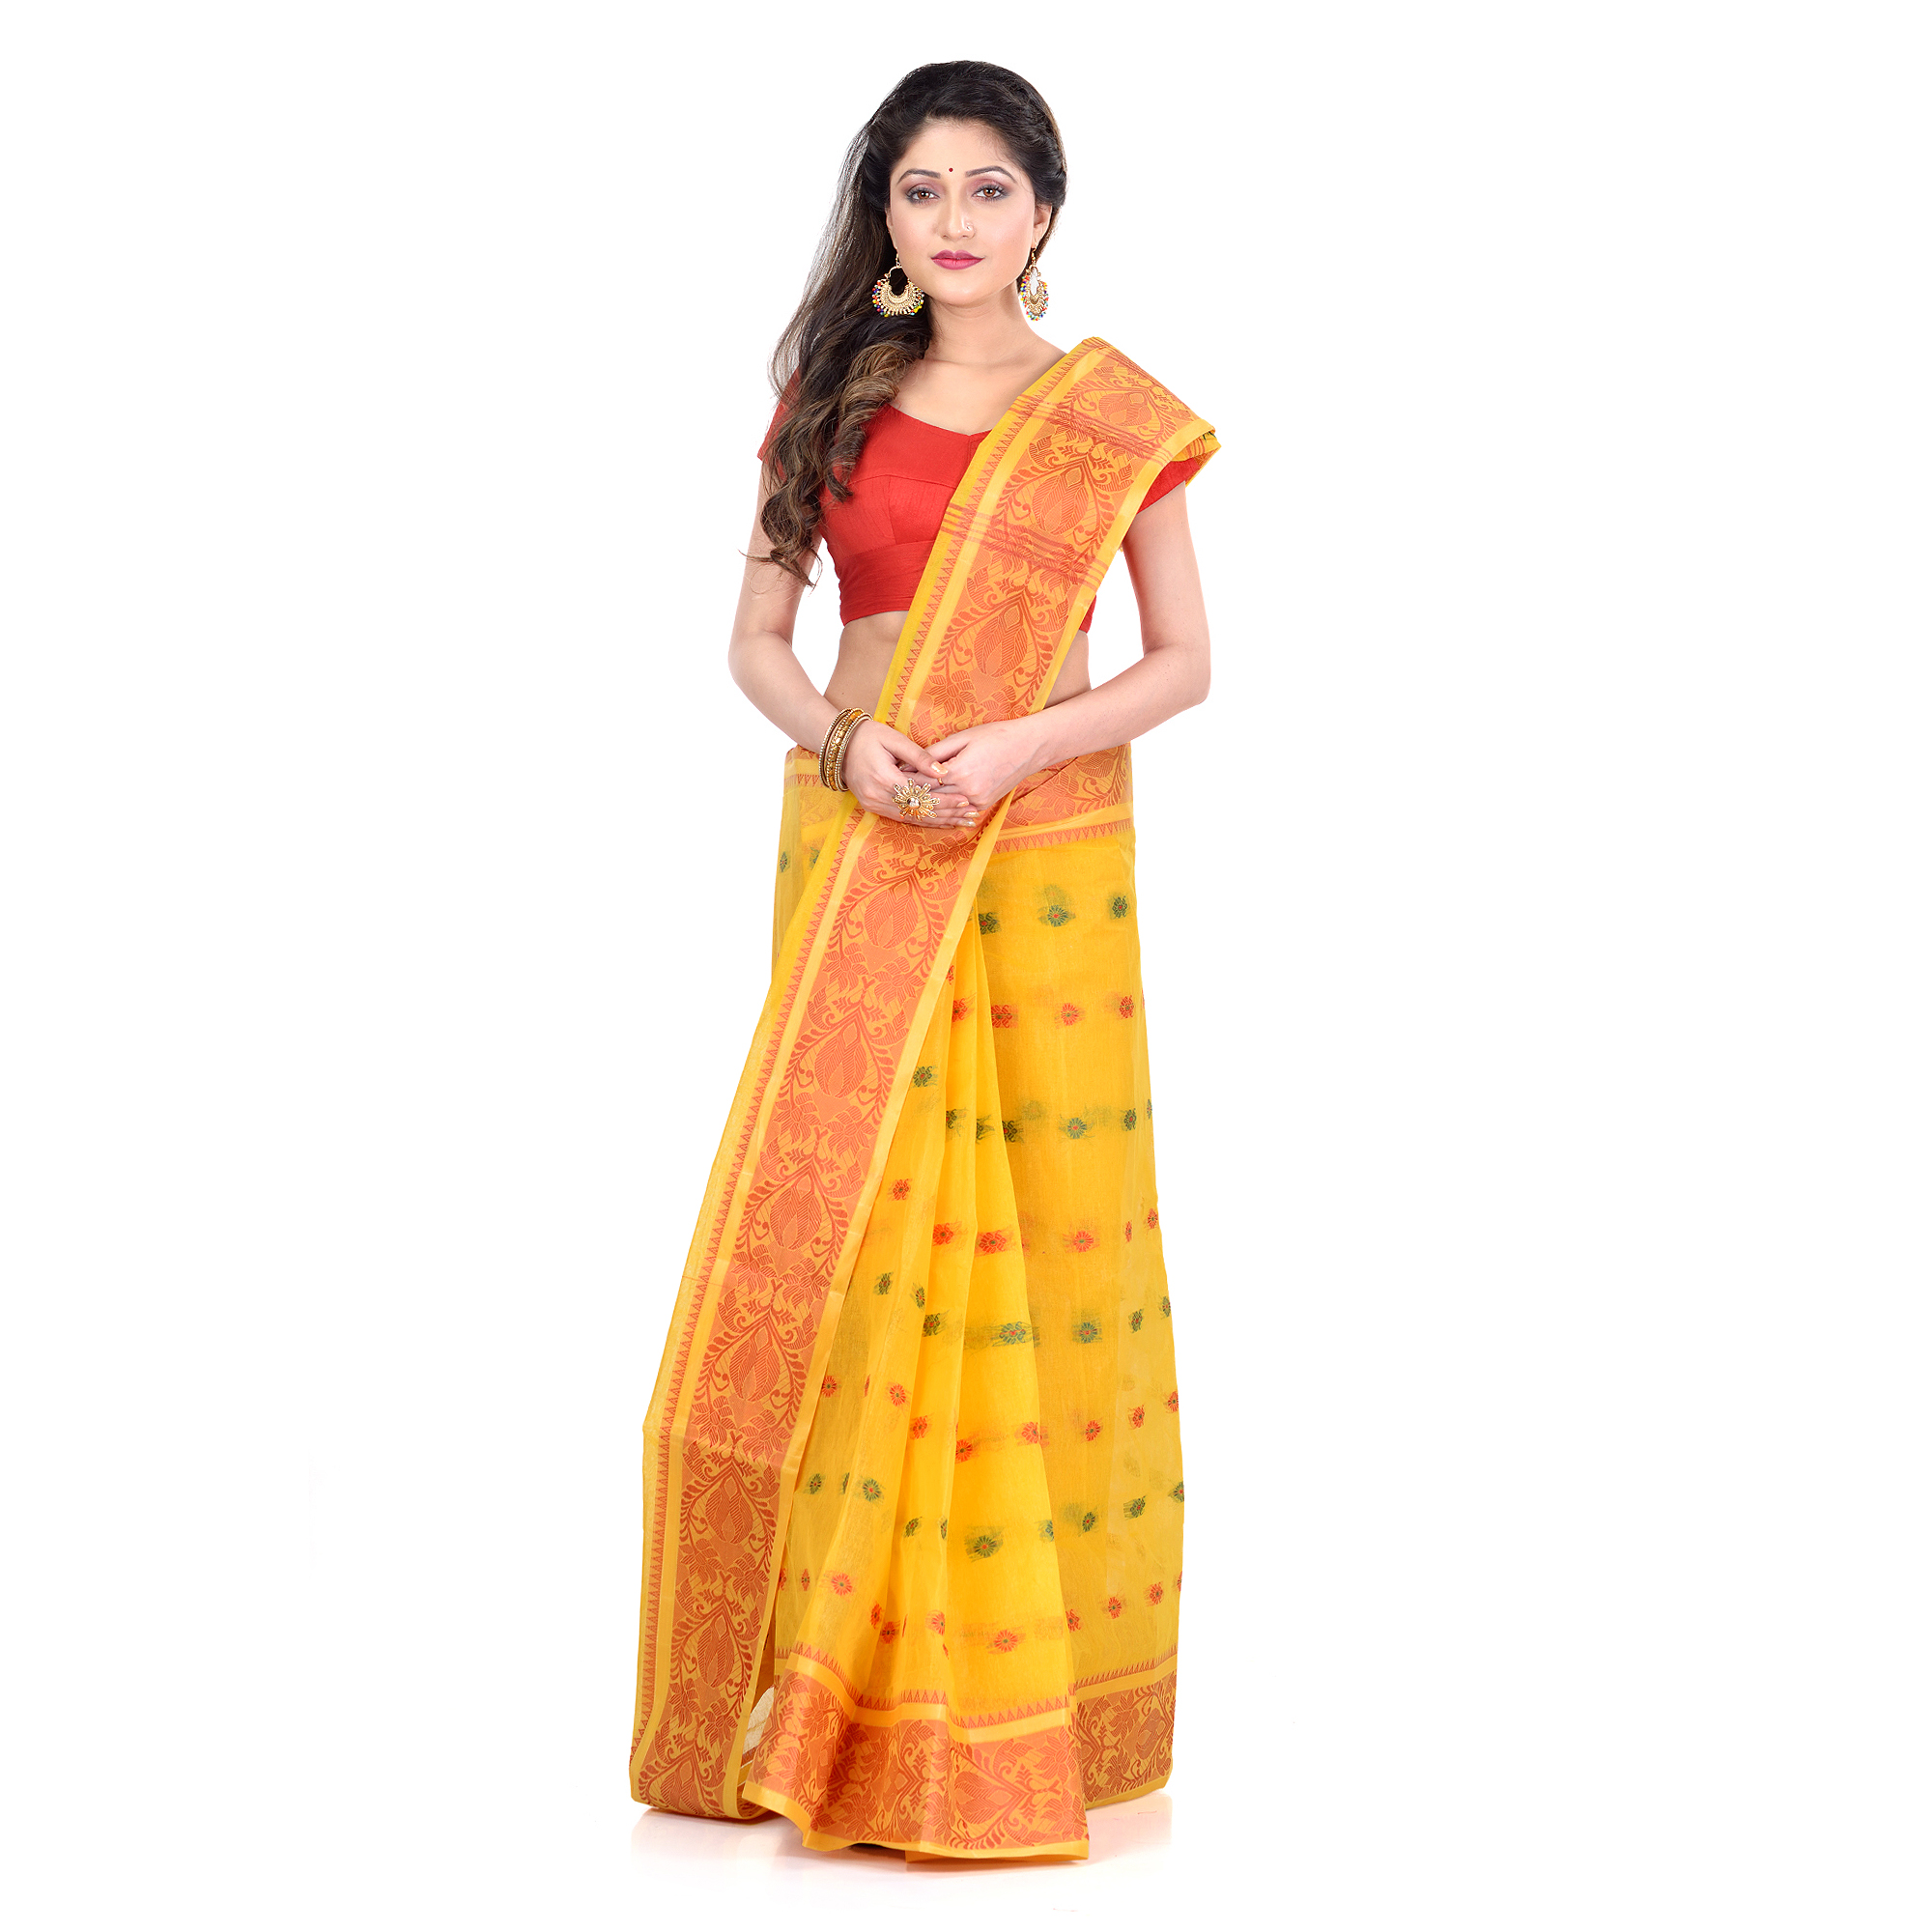 DESH BIDESH Women`s Traditional Bengal Tant Woven Bee Kolka Design Pure Handloom Cotton Saree Without Blouse Piece (Yellow)